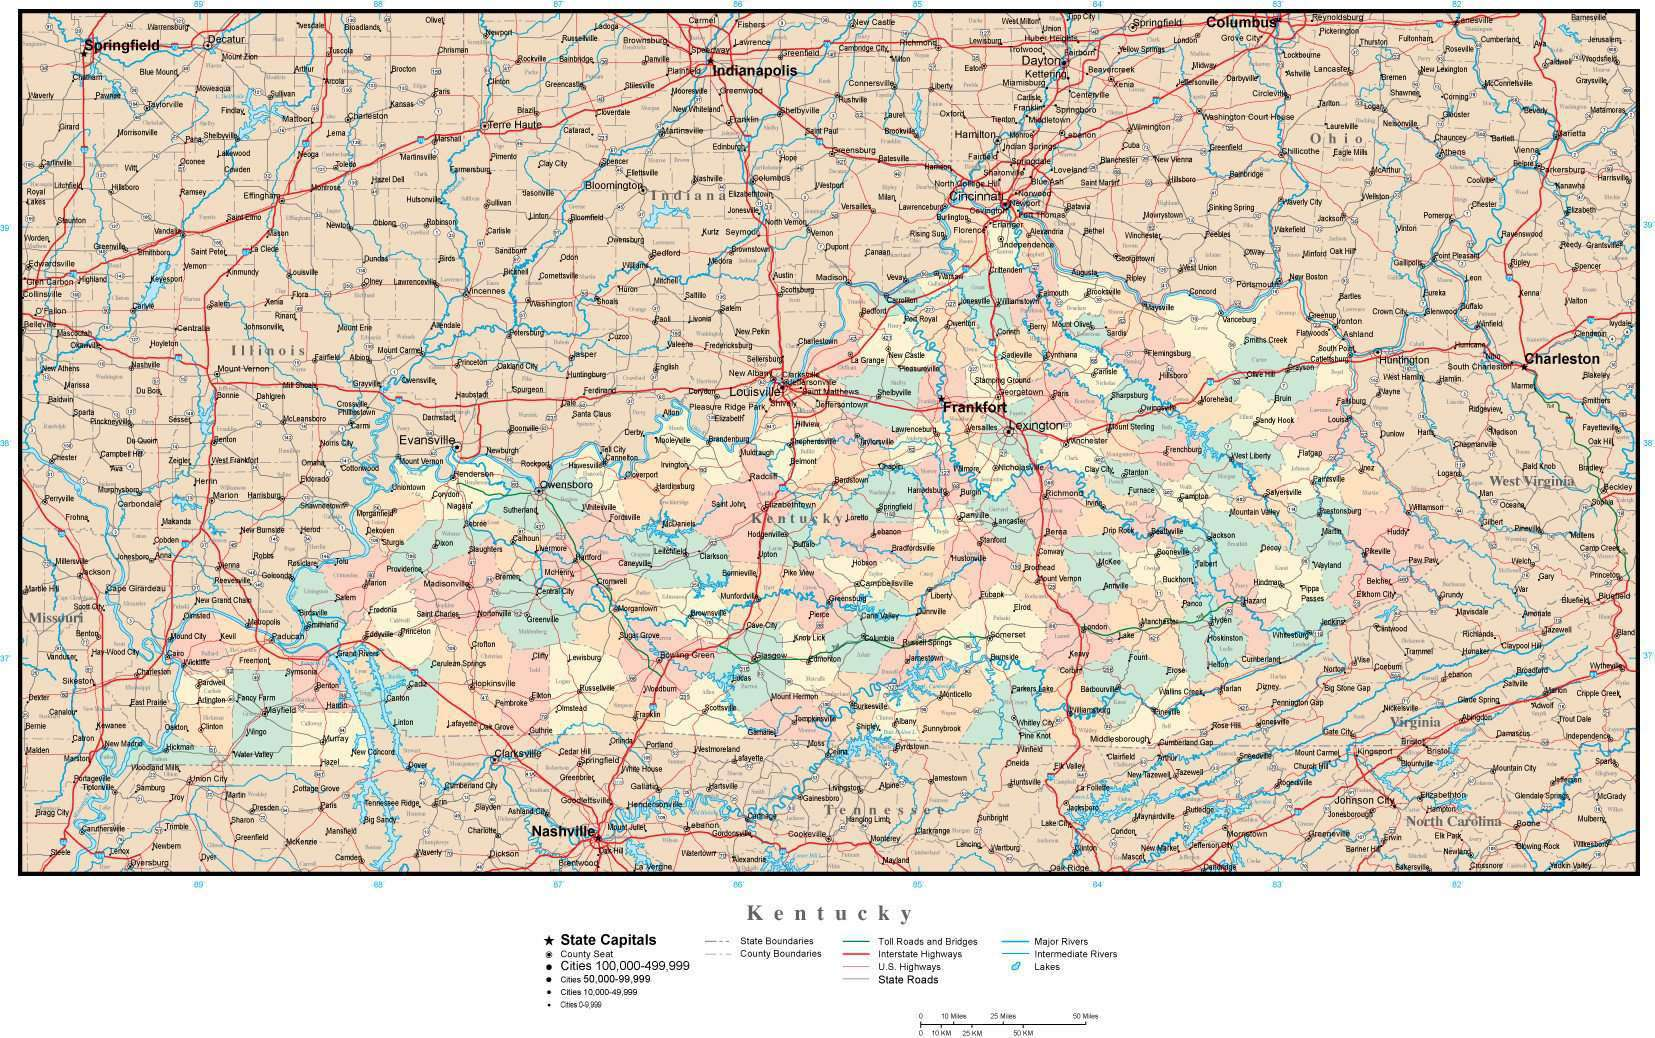 Kentucky Map with Counties, Cities, County Seats, Major Roads, Rivers on il lakes map, whitley county in map, nc lakes map, city of paducah city limit map, ohio river locks and dams map, wisconsin river map, black hills south dakota map, chain of lakes wisconsin map, cedar creek map, land between the lakes map, cumberland river map, forum map, buckhorn state park map, paducah street map, deep creek mountains utah map, north dakota lakes map, lbl map, kentucky map, deep creek state park map, florida wineries map,